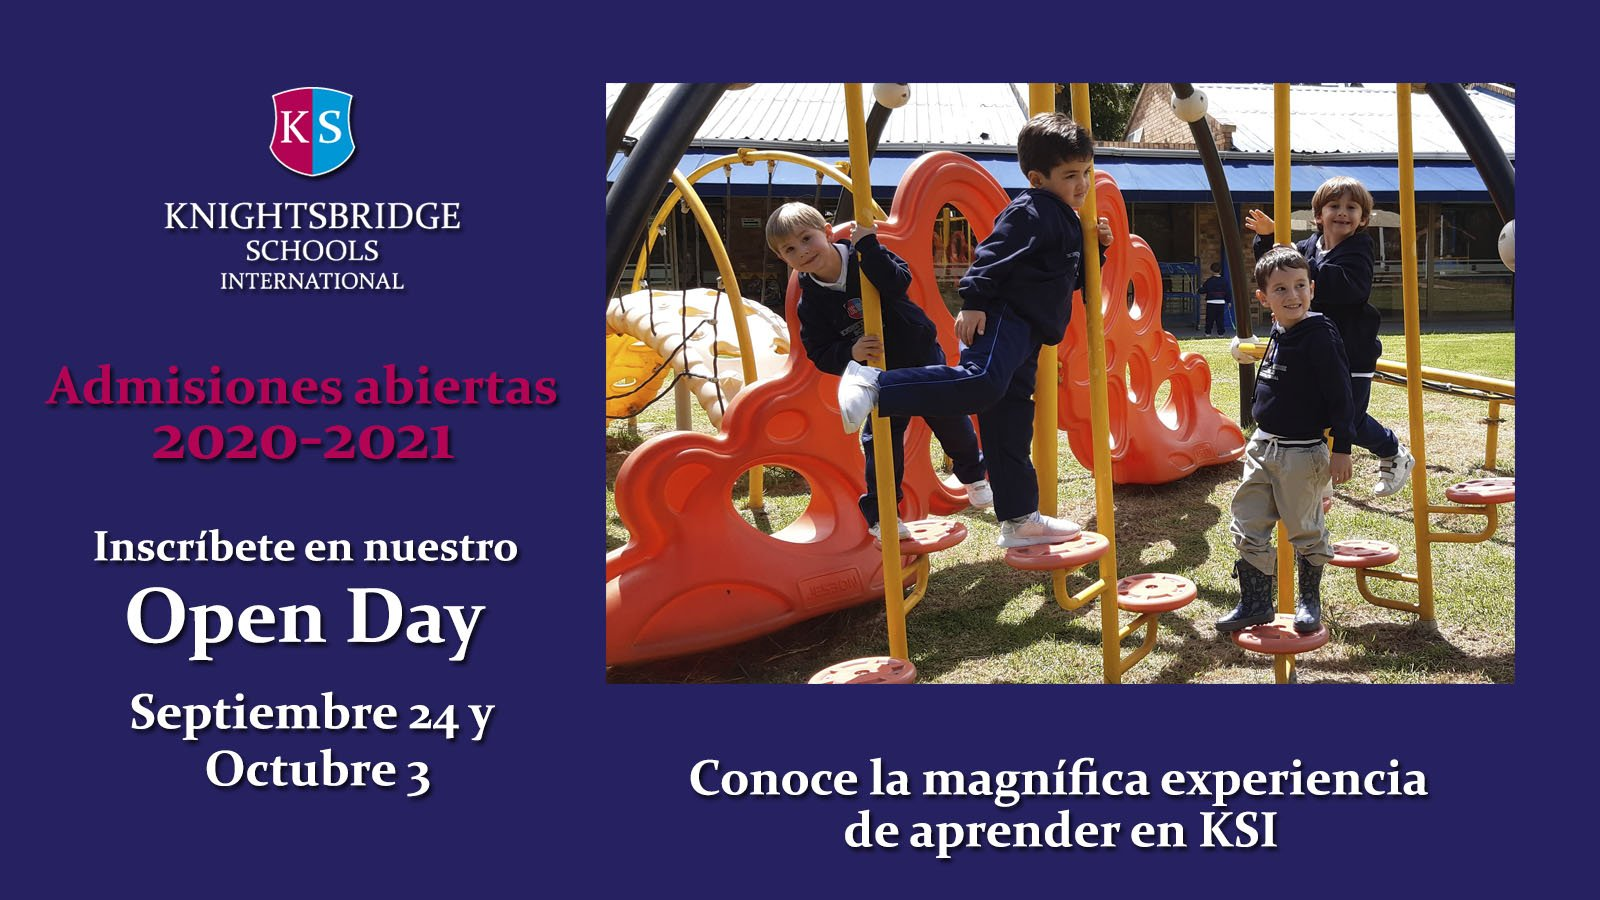 ksi-knightsbridge-schools-international-bogota-open-house